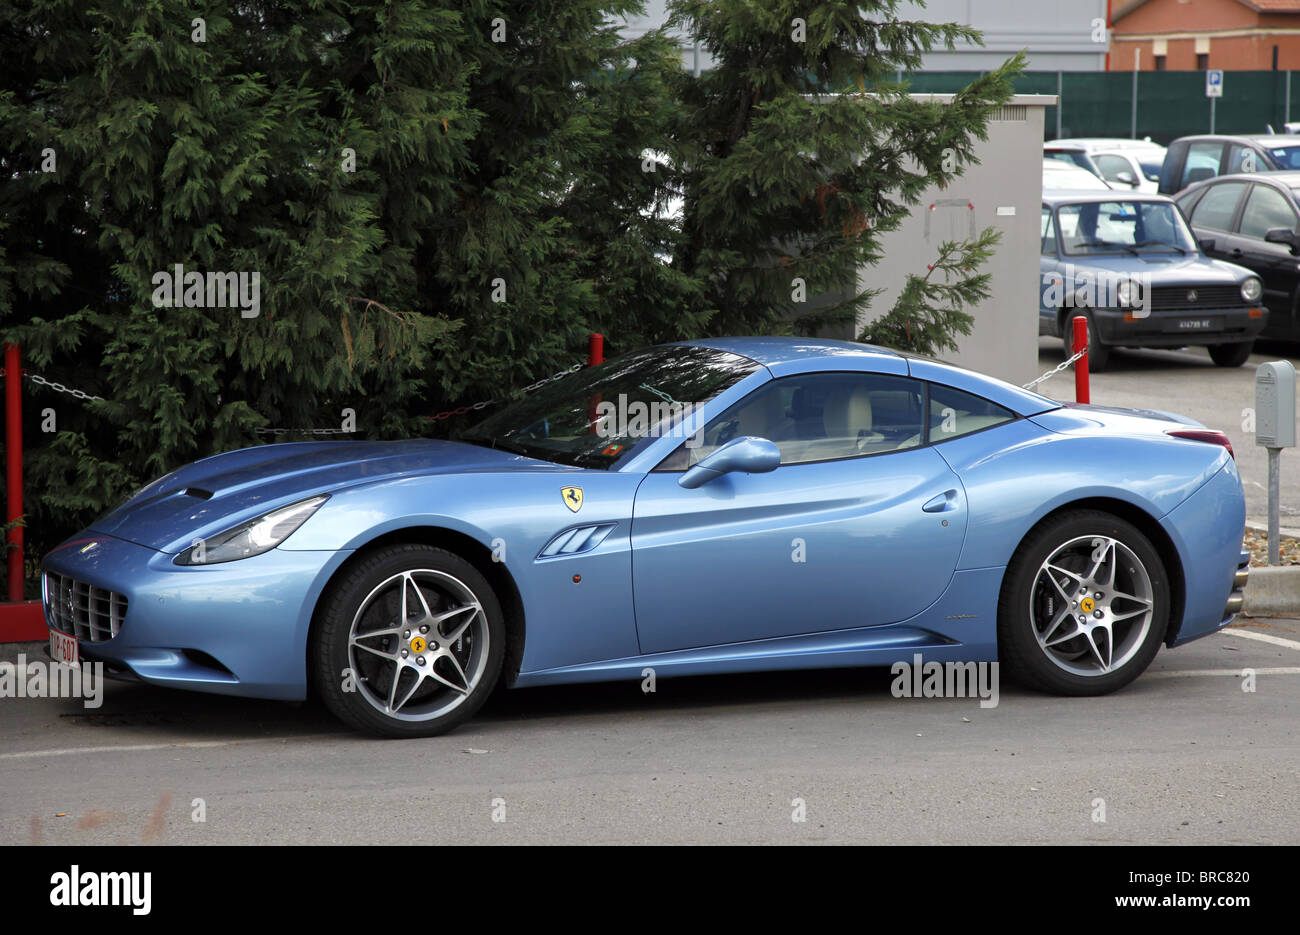 Blue Ferrari California Maranello Italy Maranello Italy Maranello Stock Photo Alamy